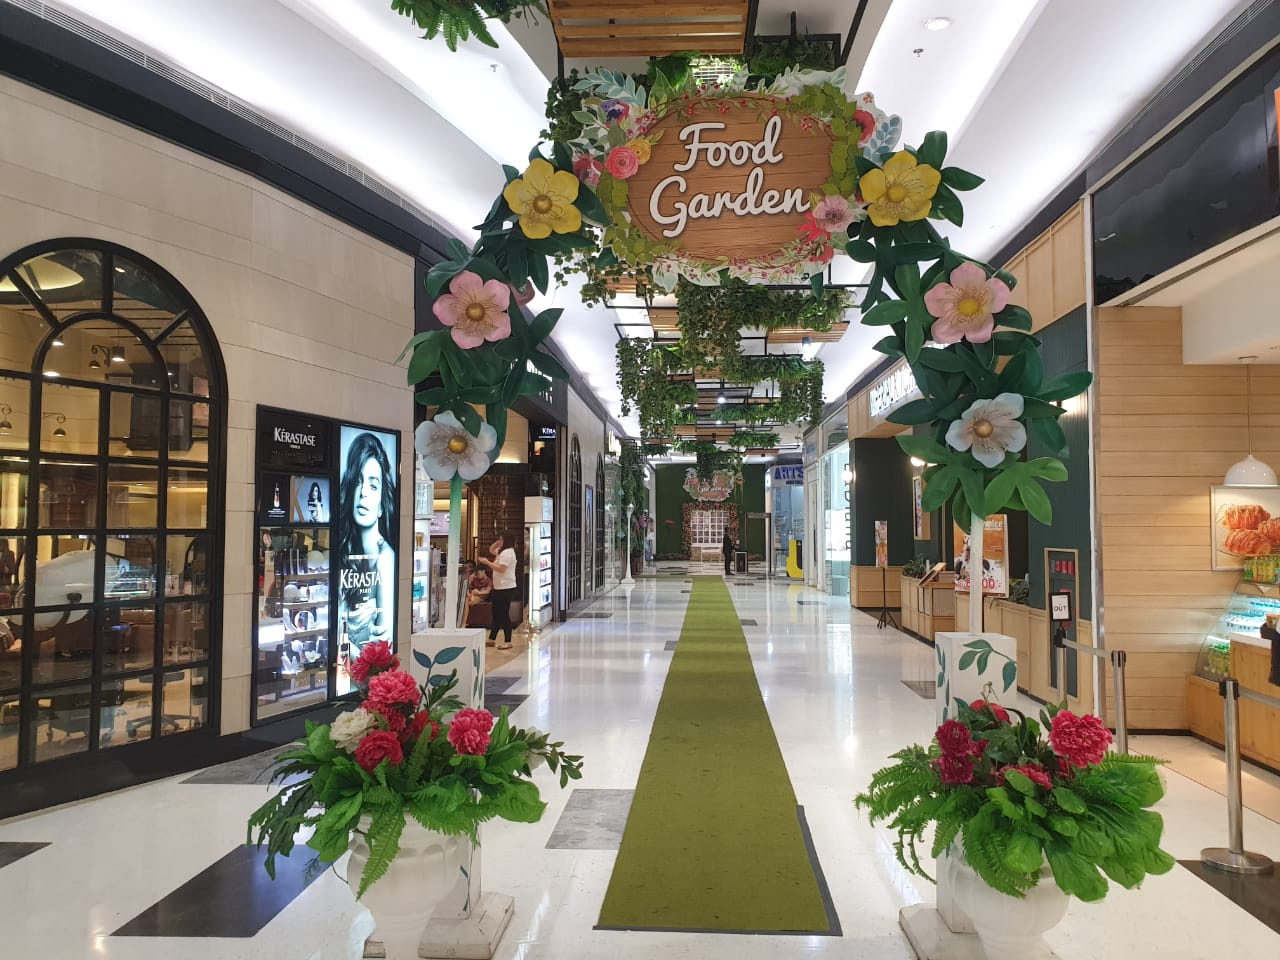 Food Garden shop front in lippo mall puri st. moritz